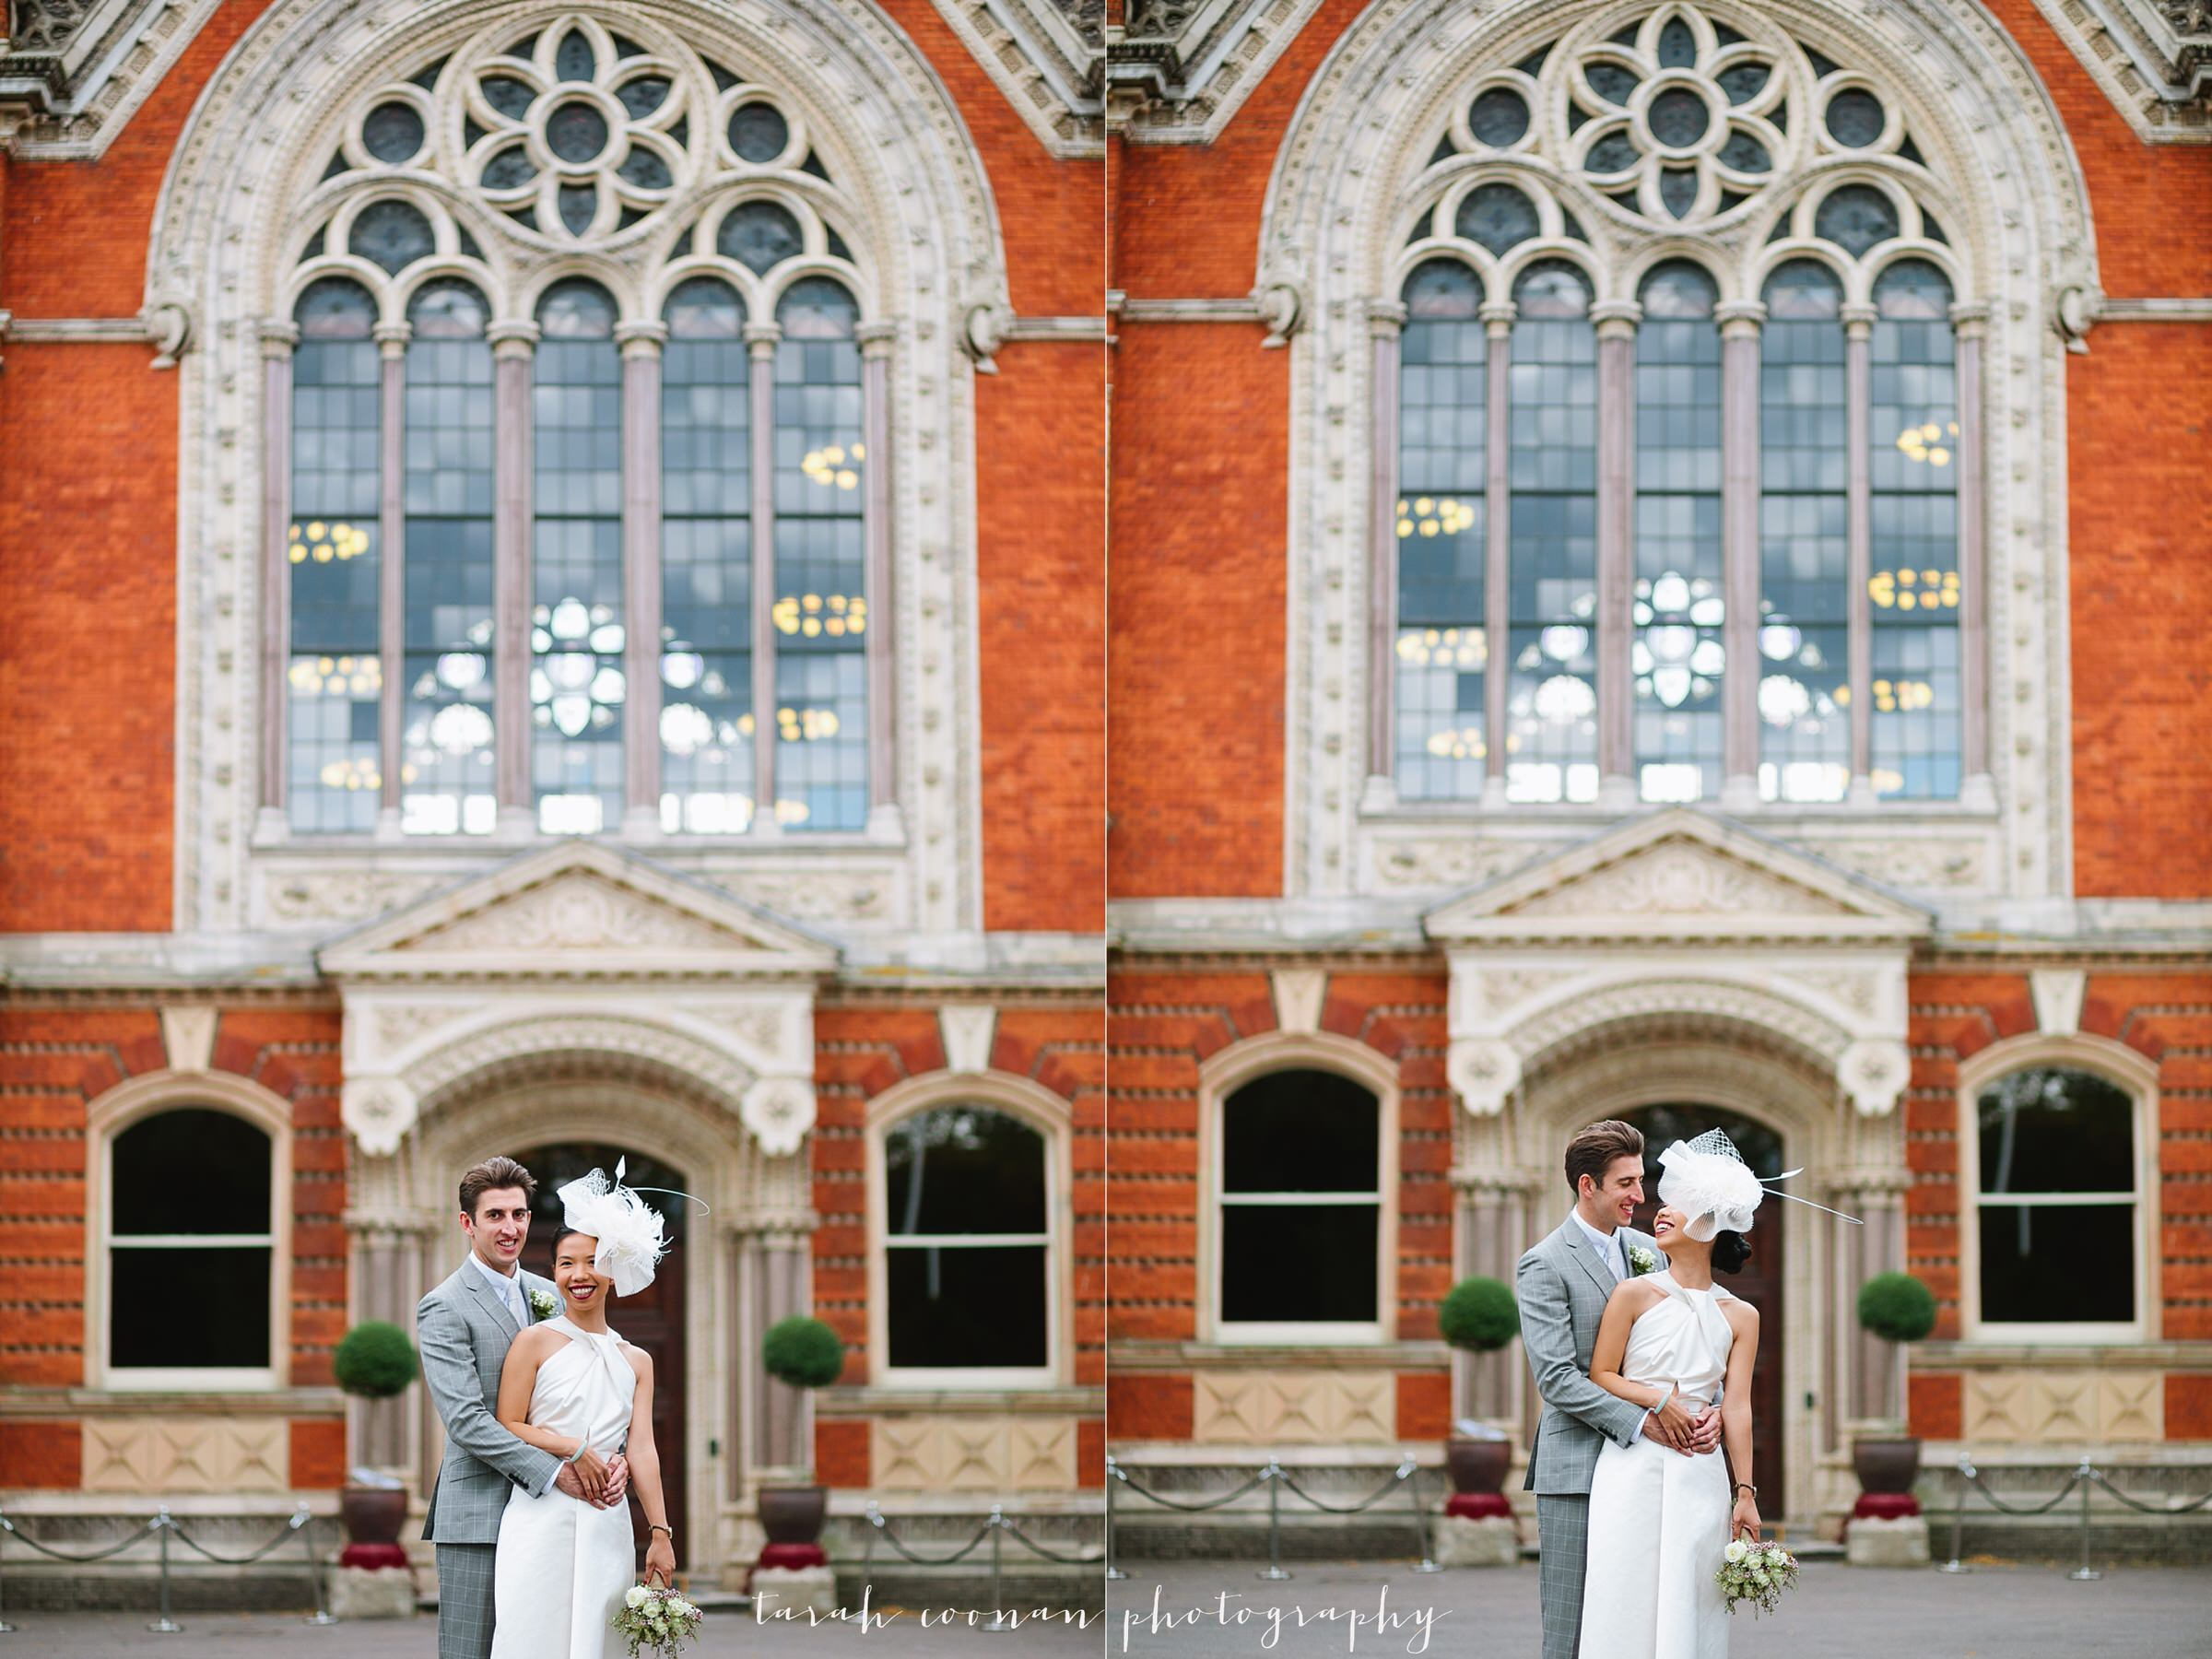 dulwich college ceremony